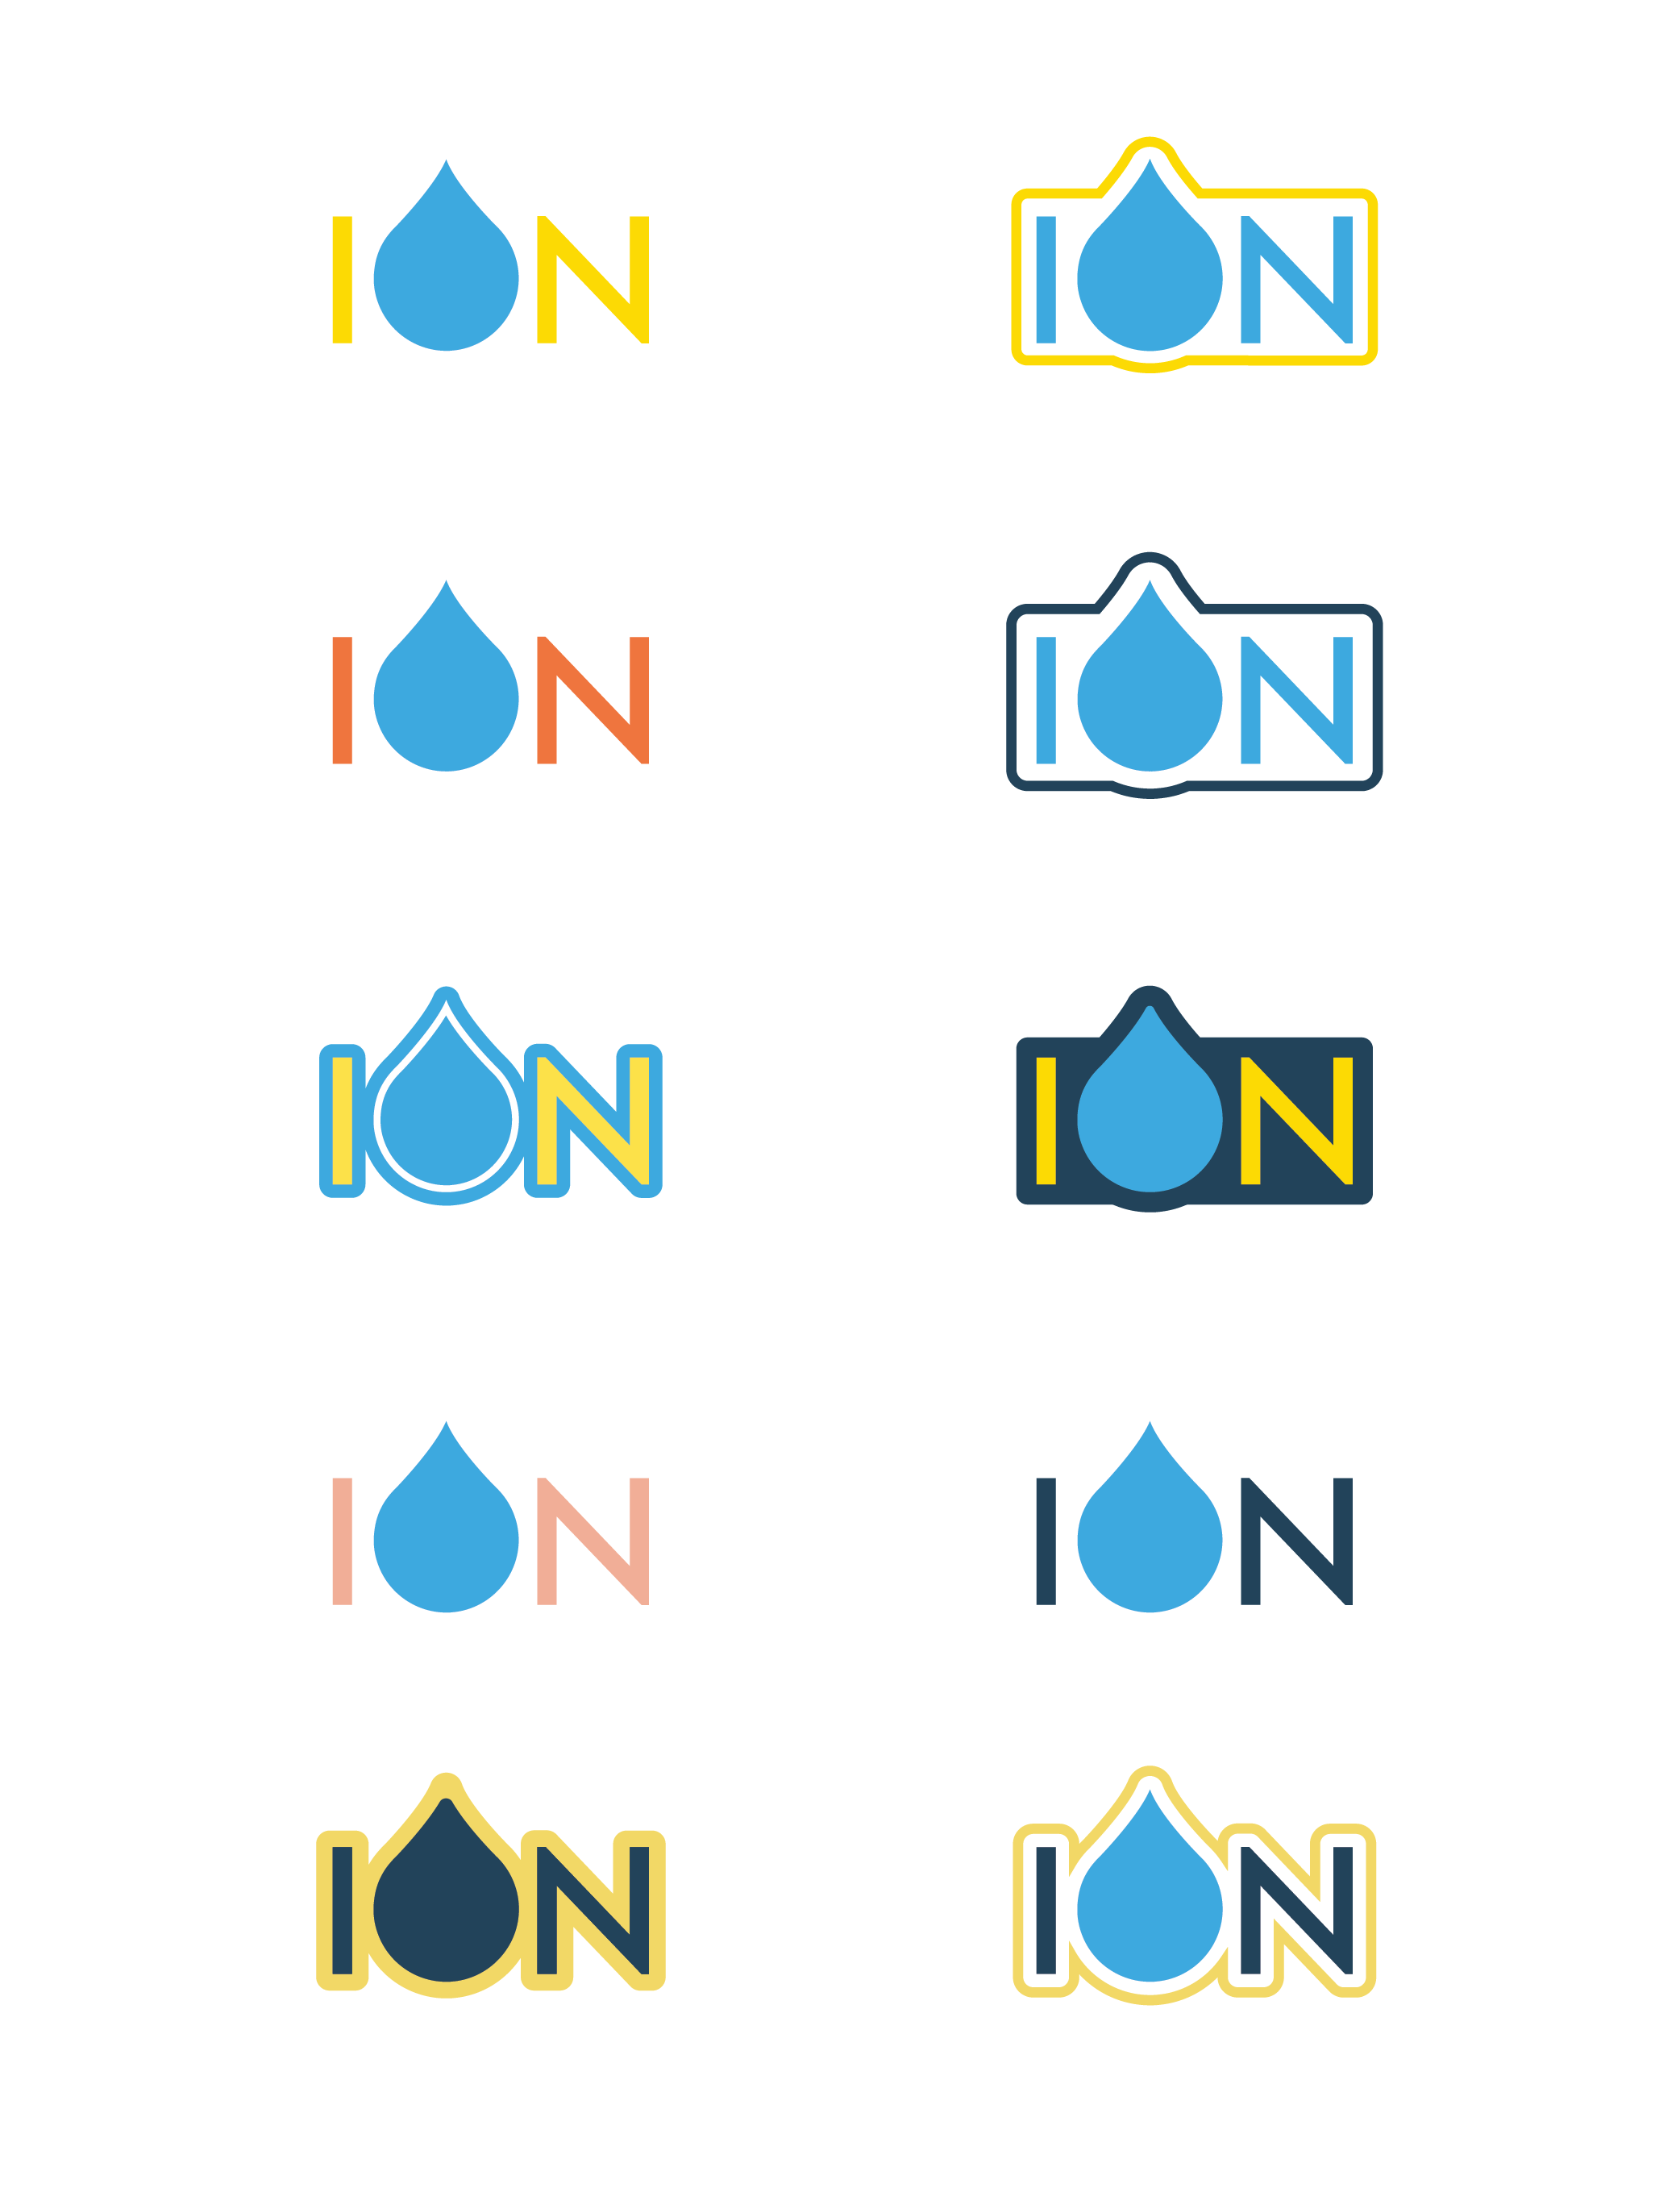 ionLogoExamples-05